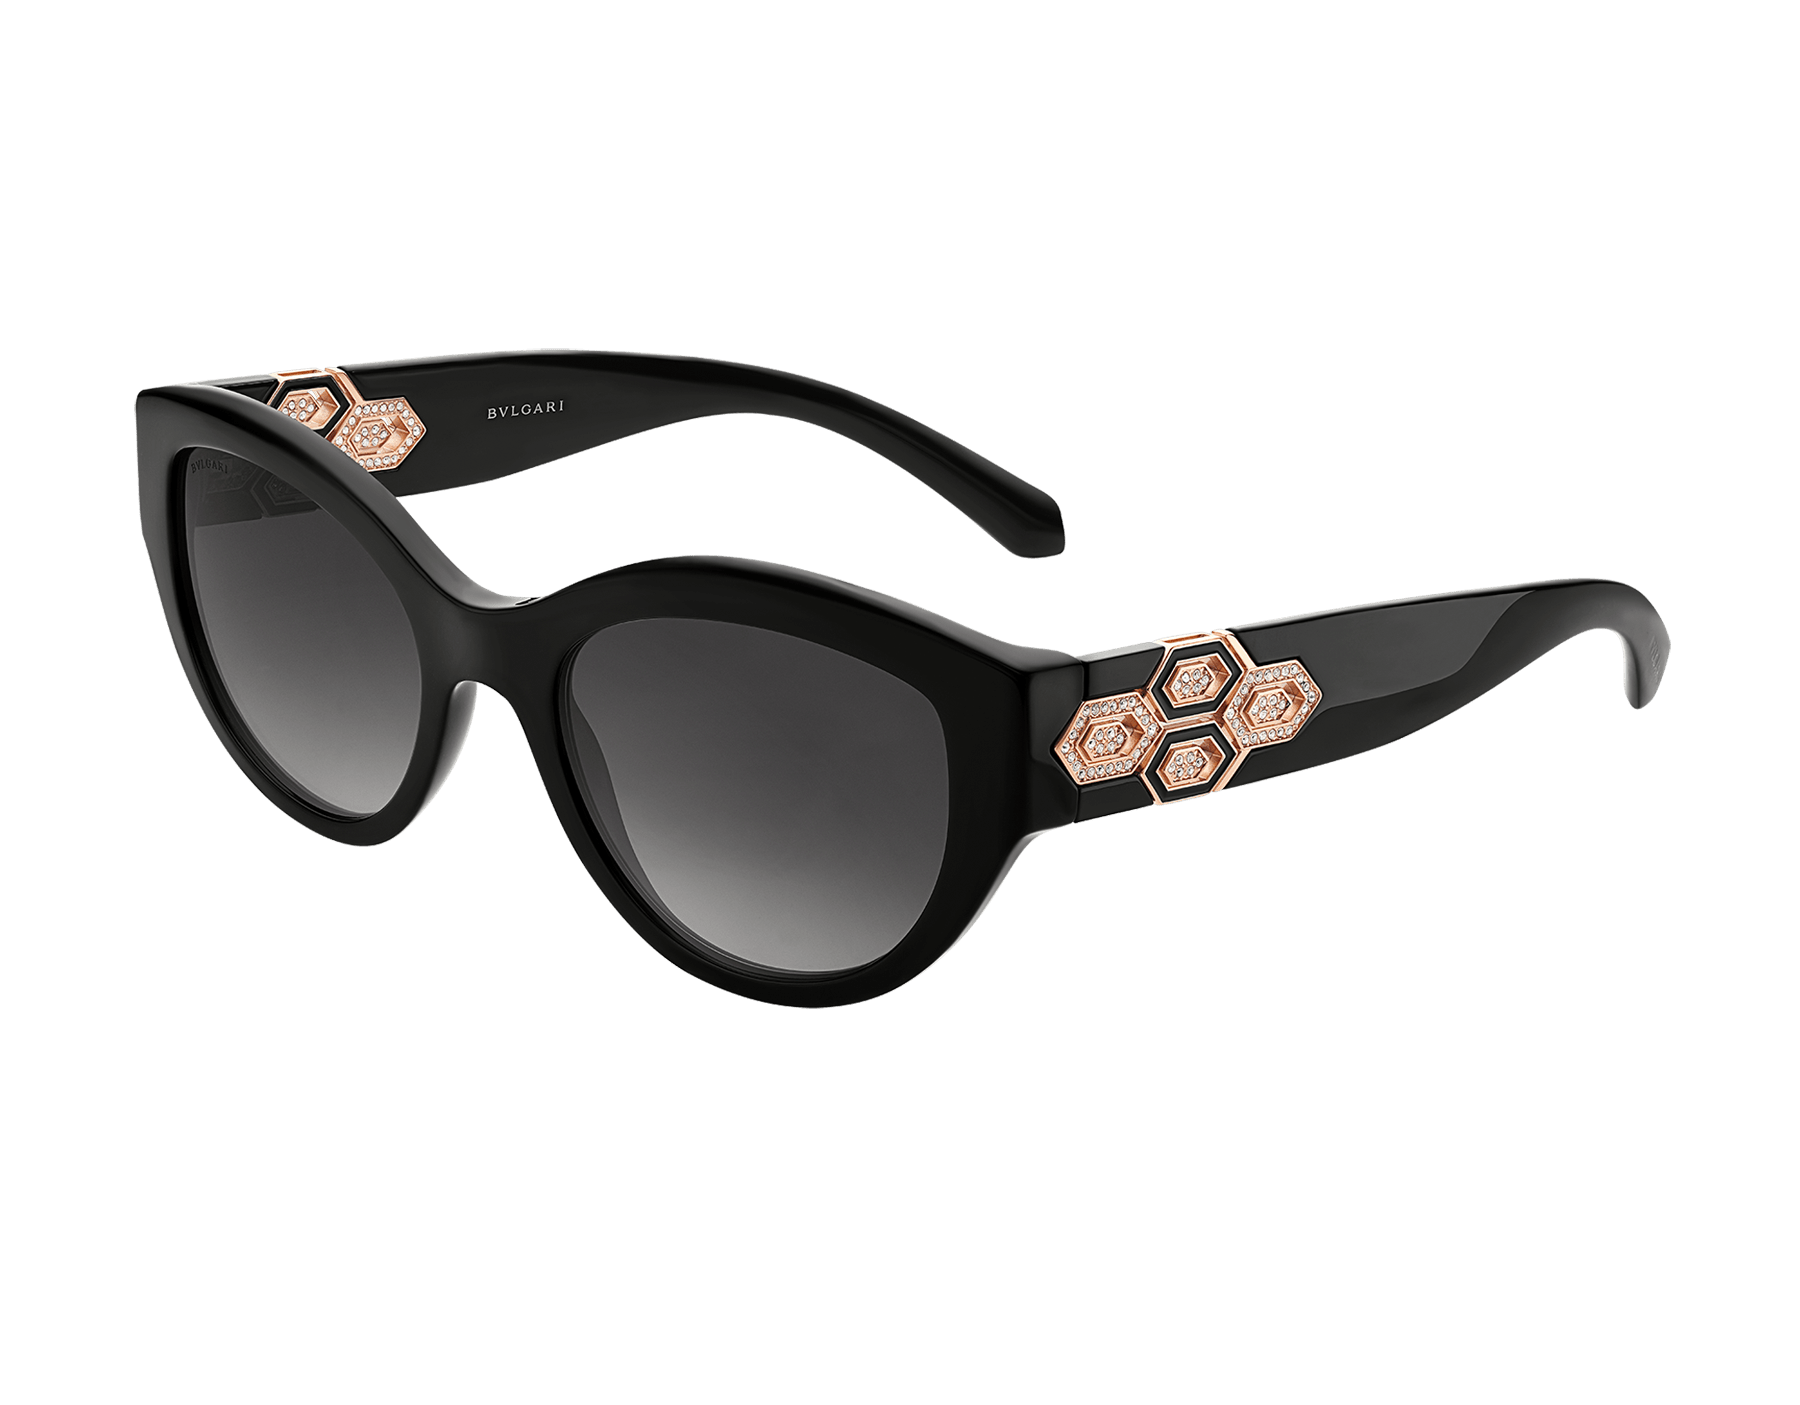 Bvlgari Serpenti cat-eye acetate sunglasses with Serpenti metal décor and crystals. 903848 image 1